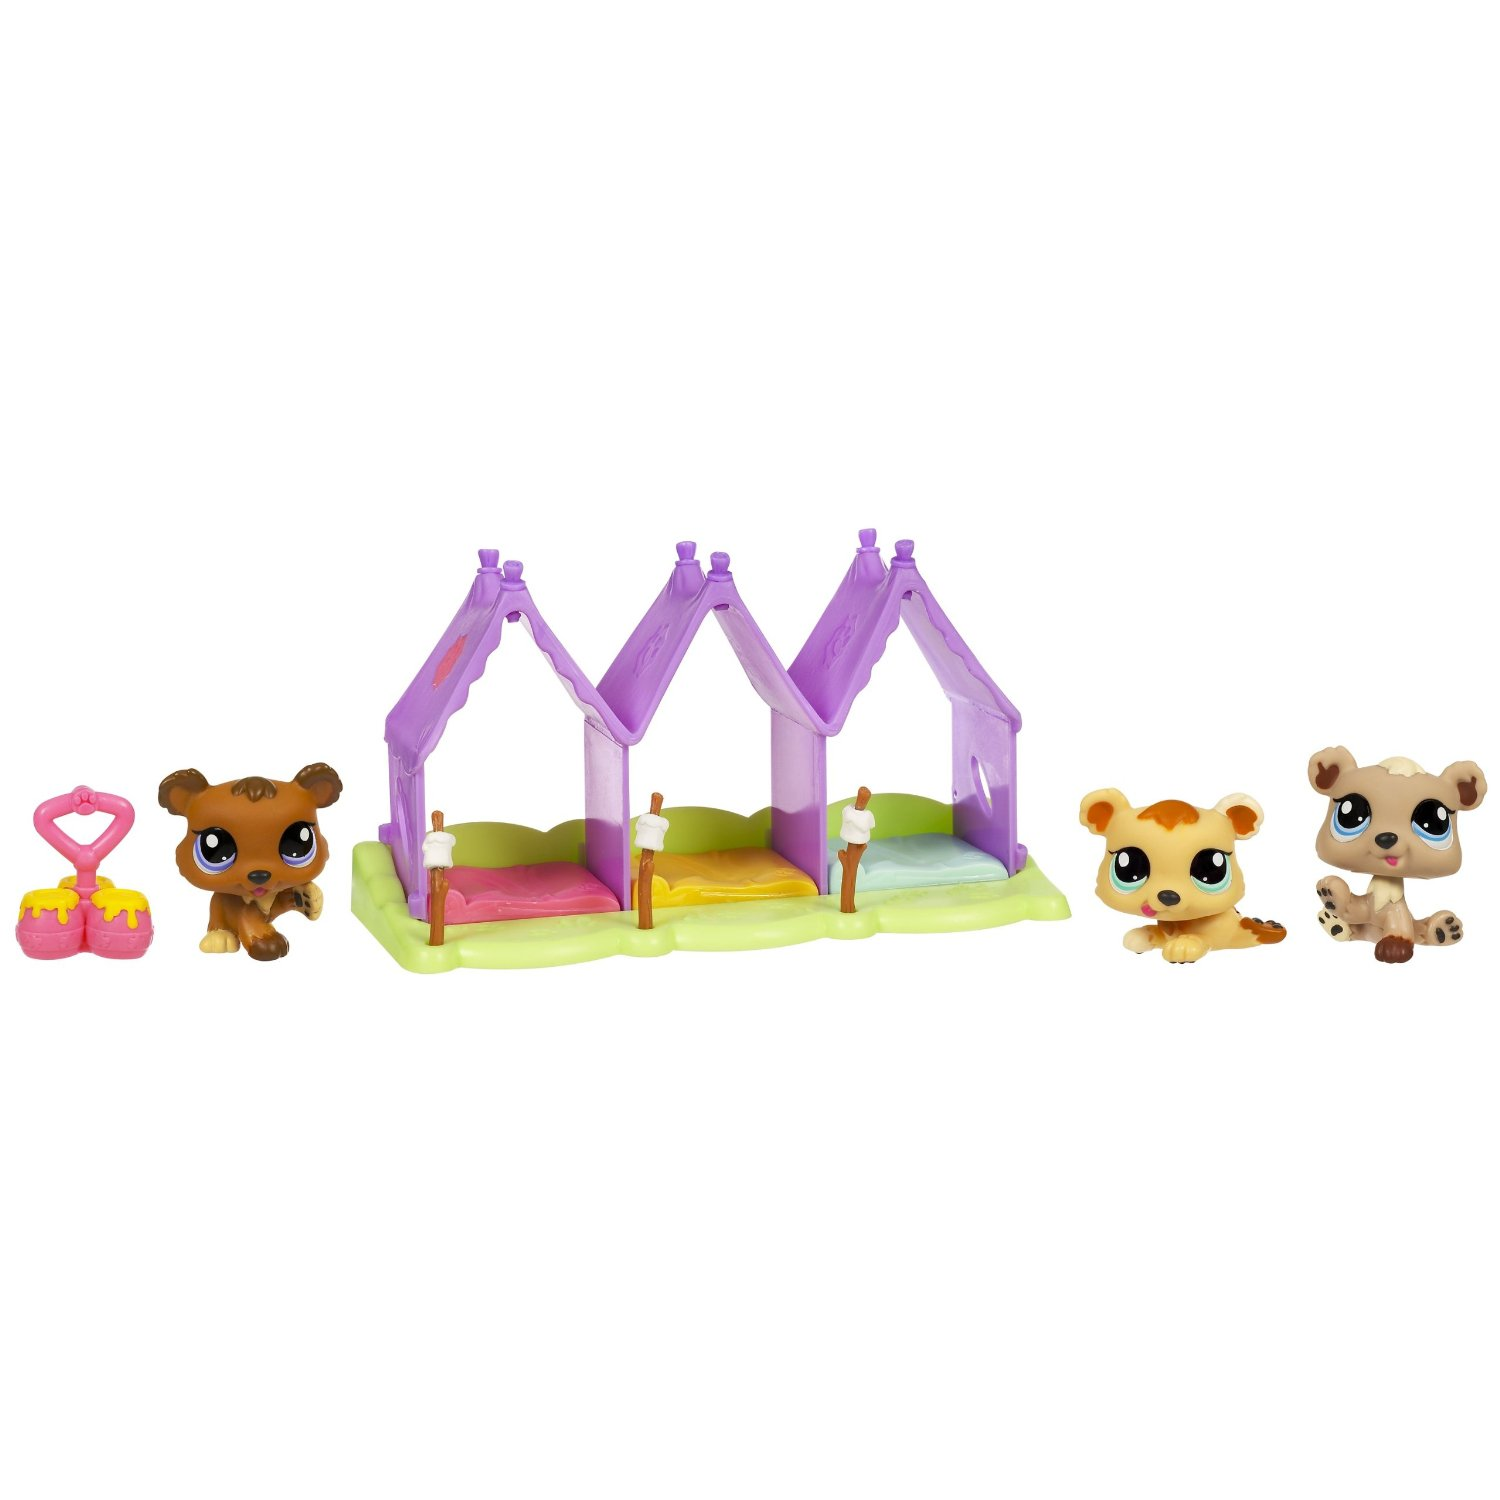 Littlest Pet Shop Pet Triplets - Bears at Sears.com